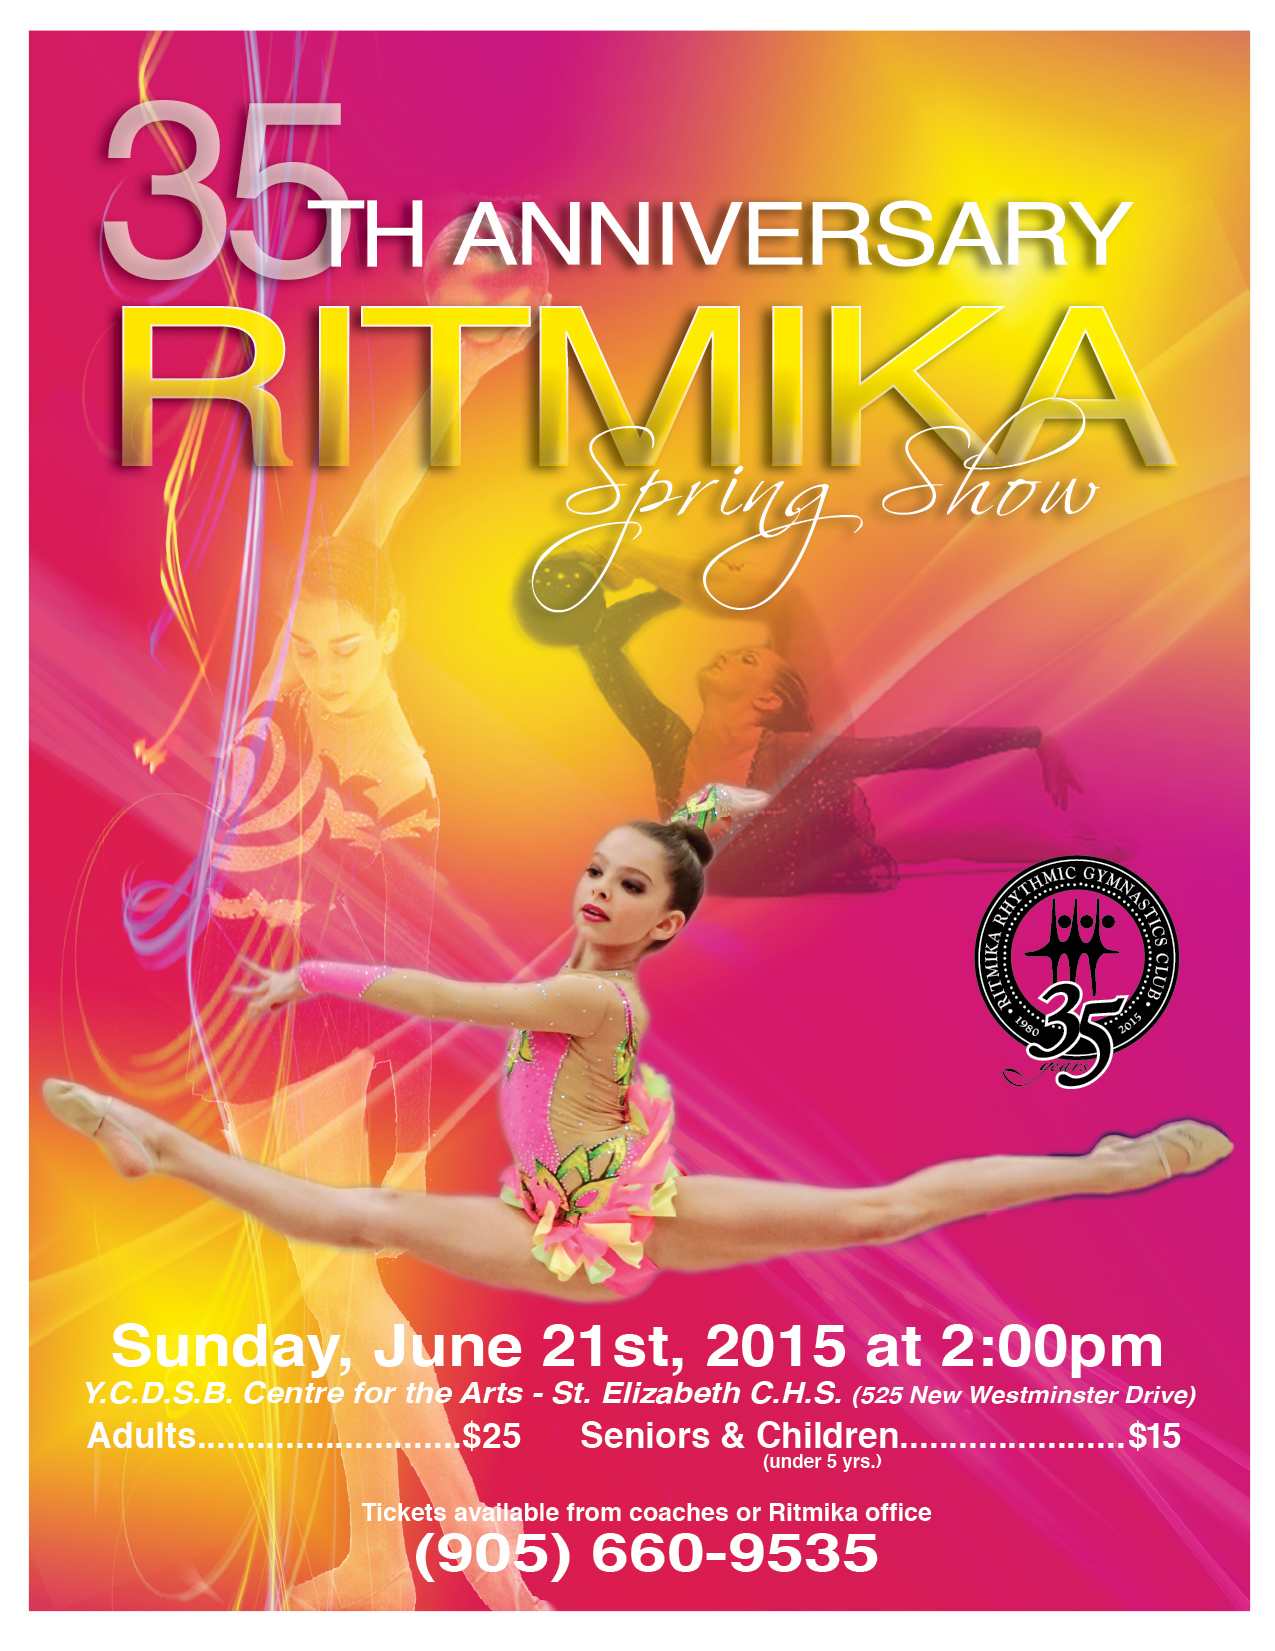 ritmika 35th annual spring show